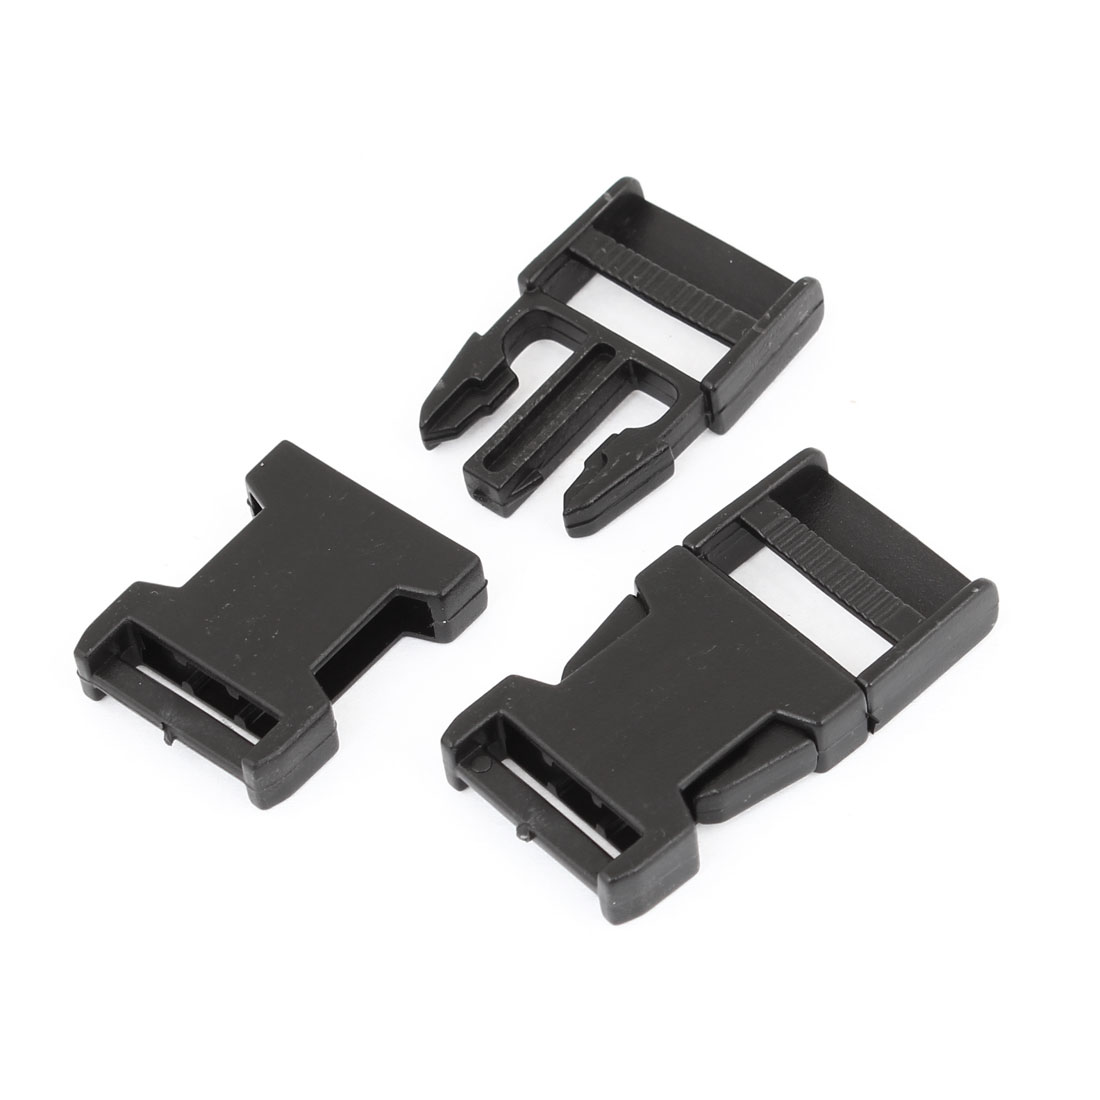 "2 Pcs Black Replacement 2cm 3/4"" Side Quick Release Buckle"